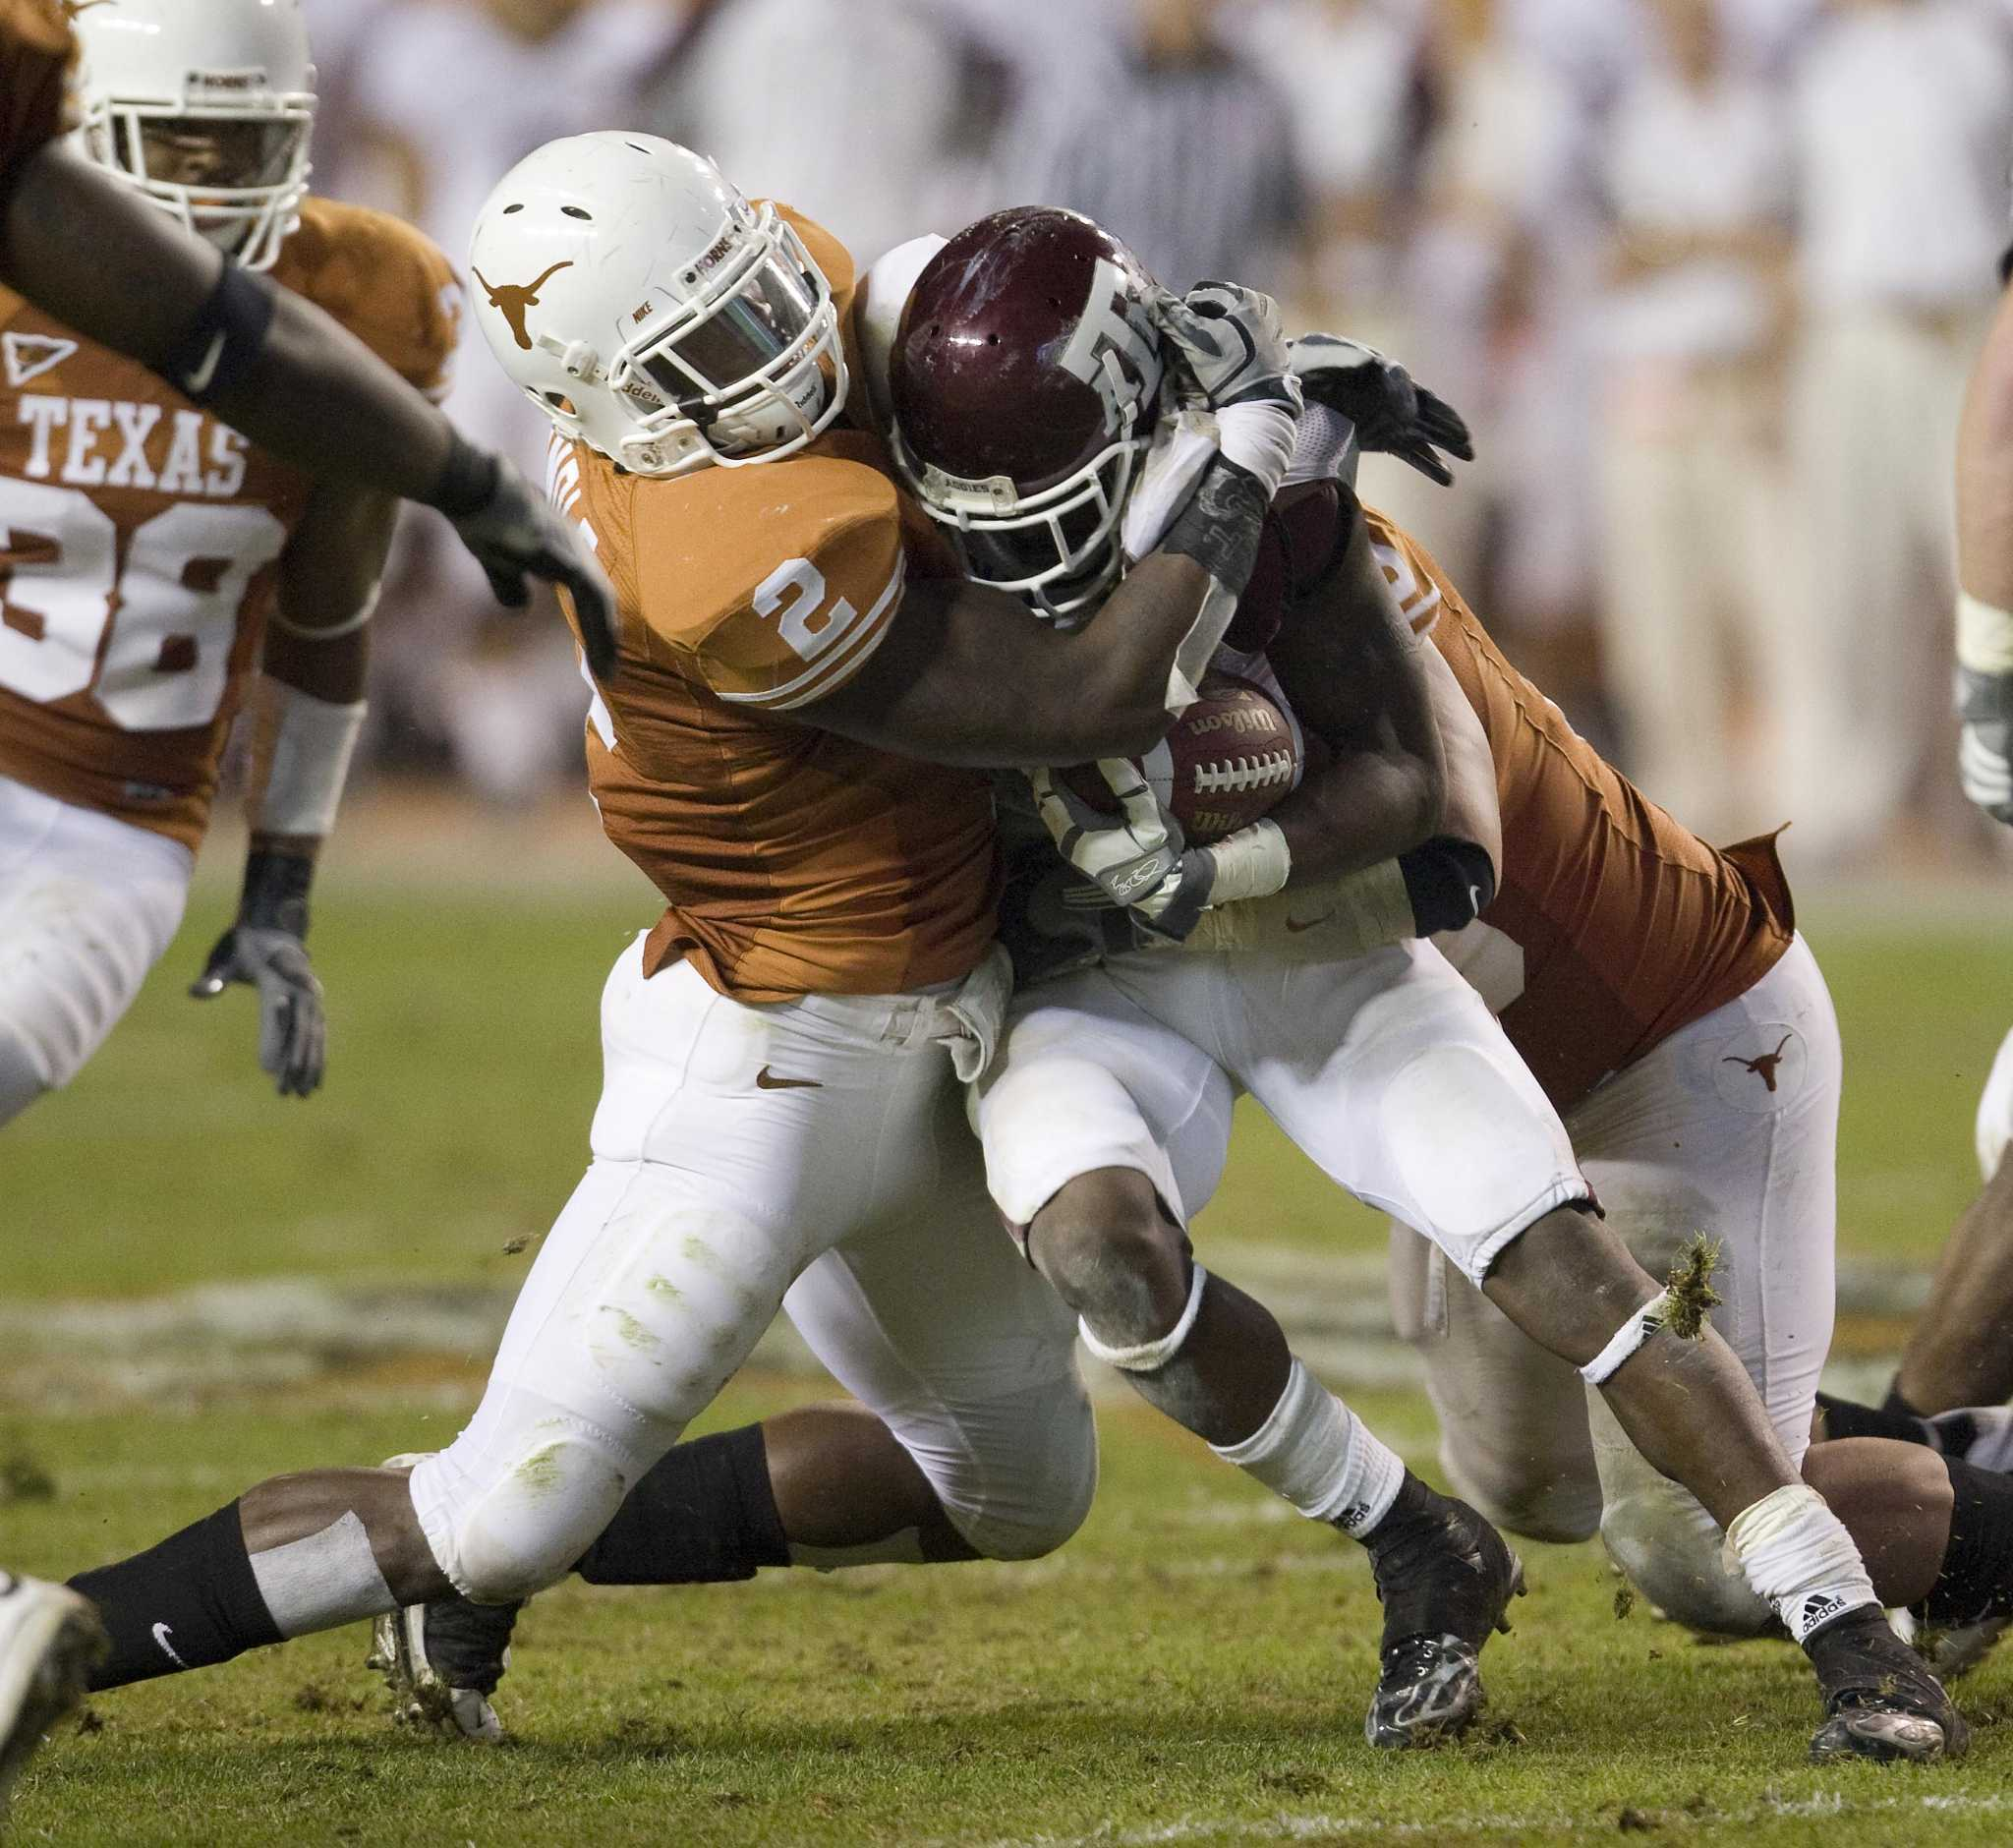 There's more to the Texas A&M-UT rivalry than football [Opinion]